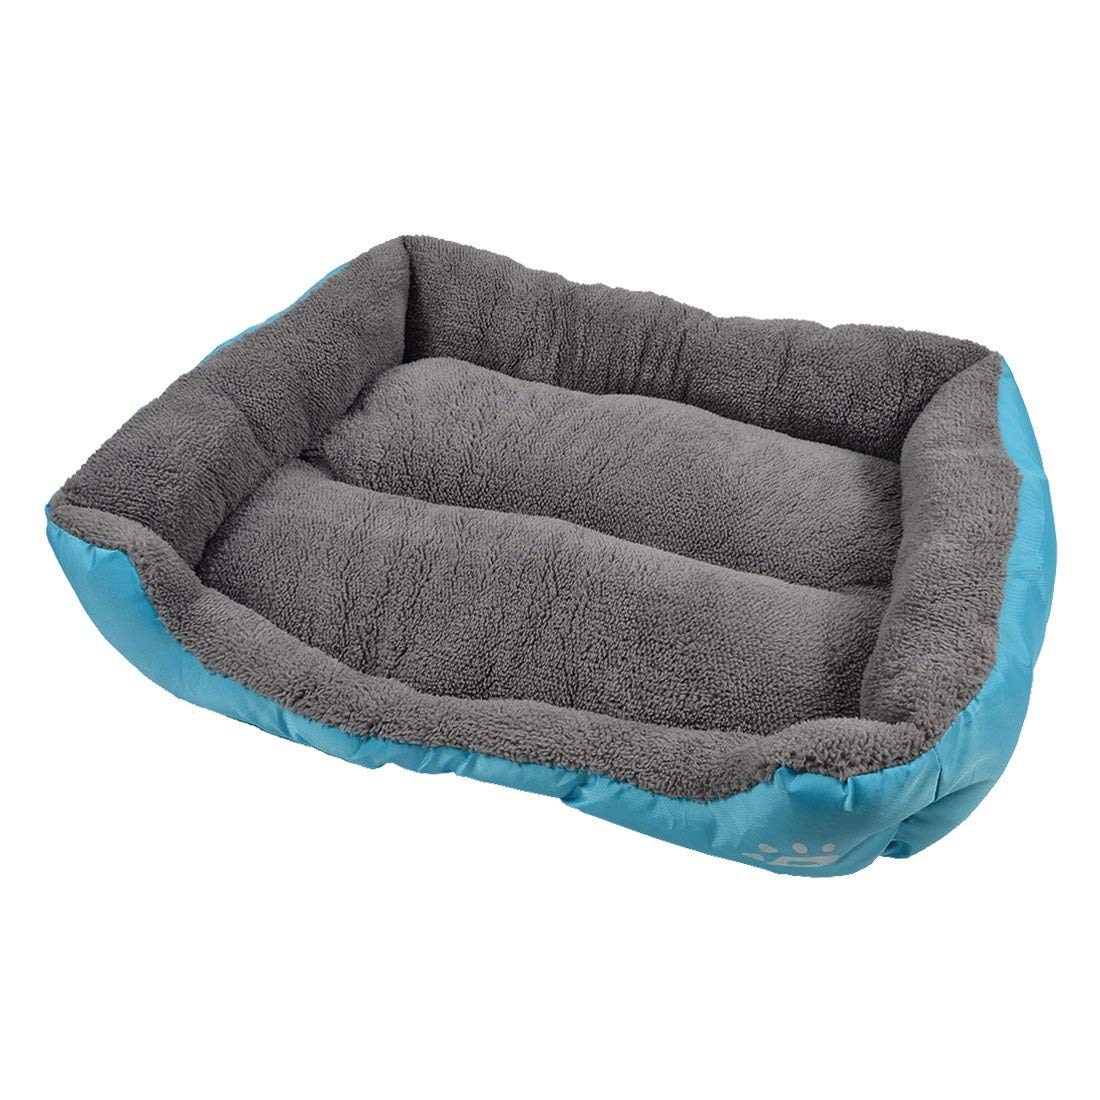 Paw Printed Pet Puppy Cushion Basket Cat Doghole House Kennel Dog Bed L bluee